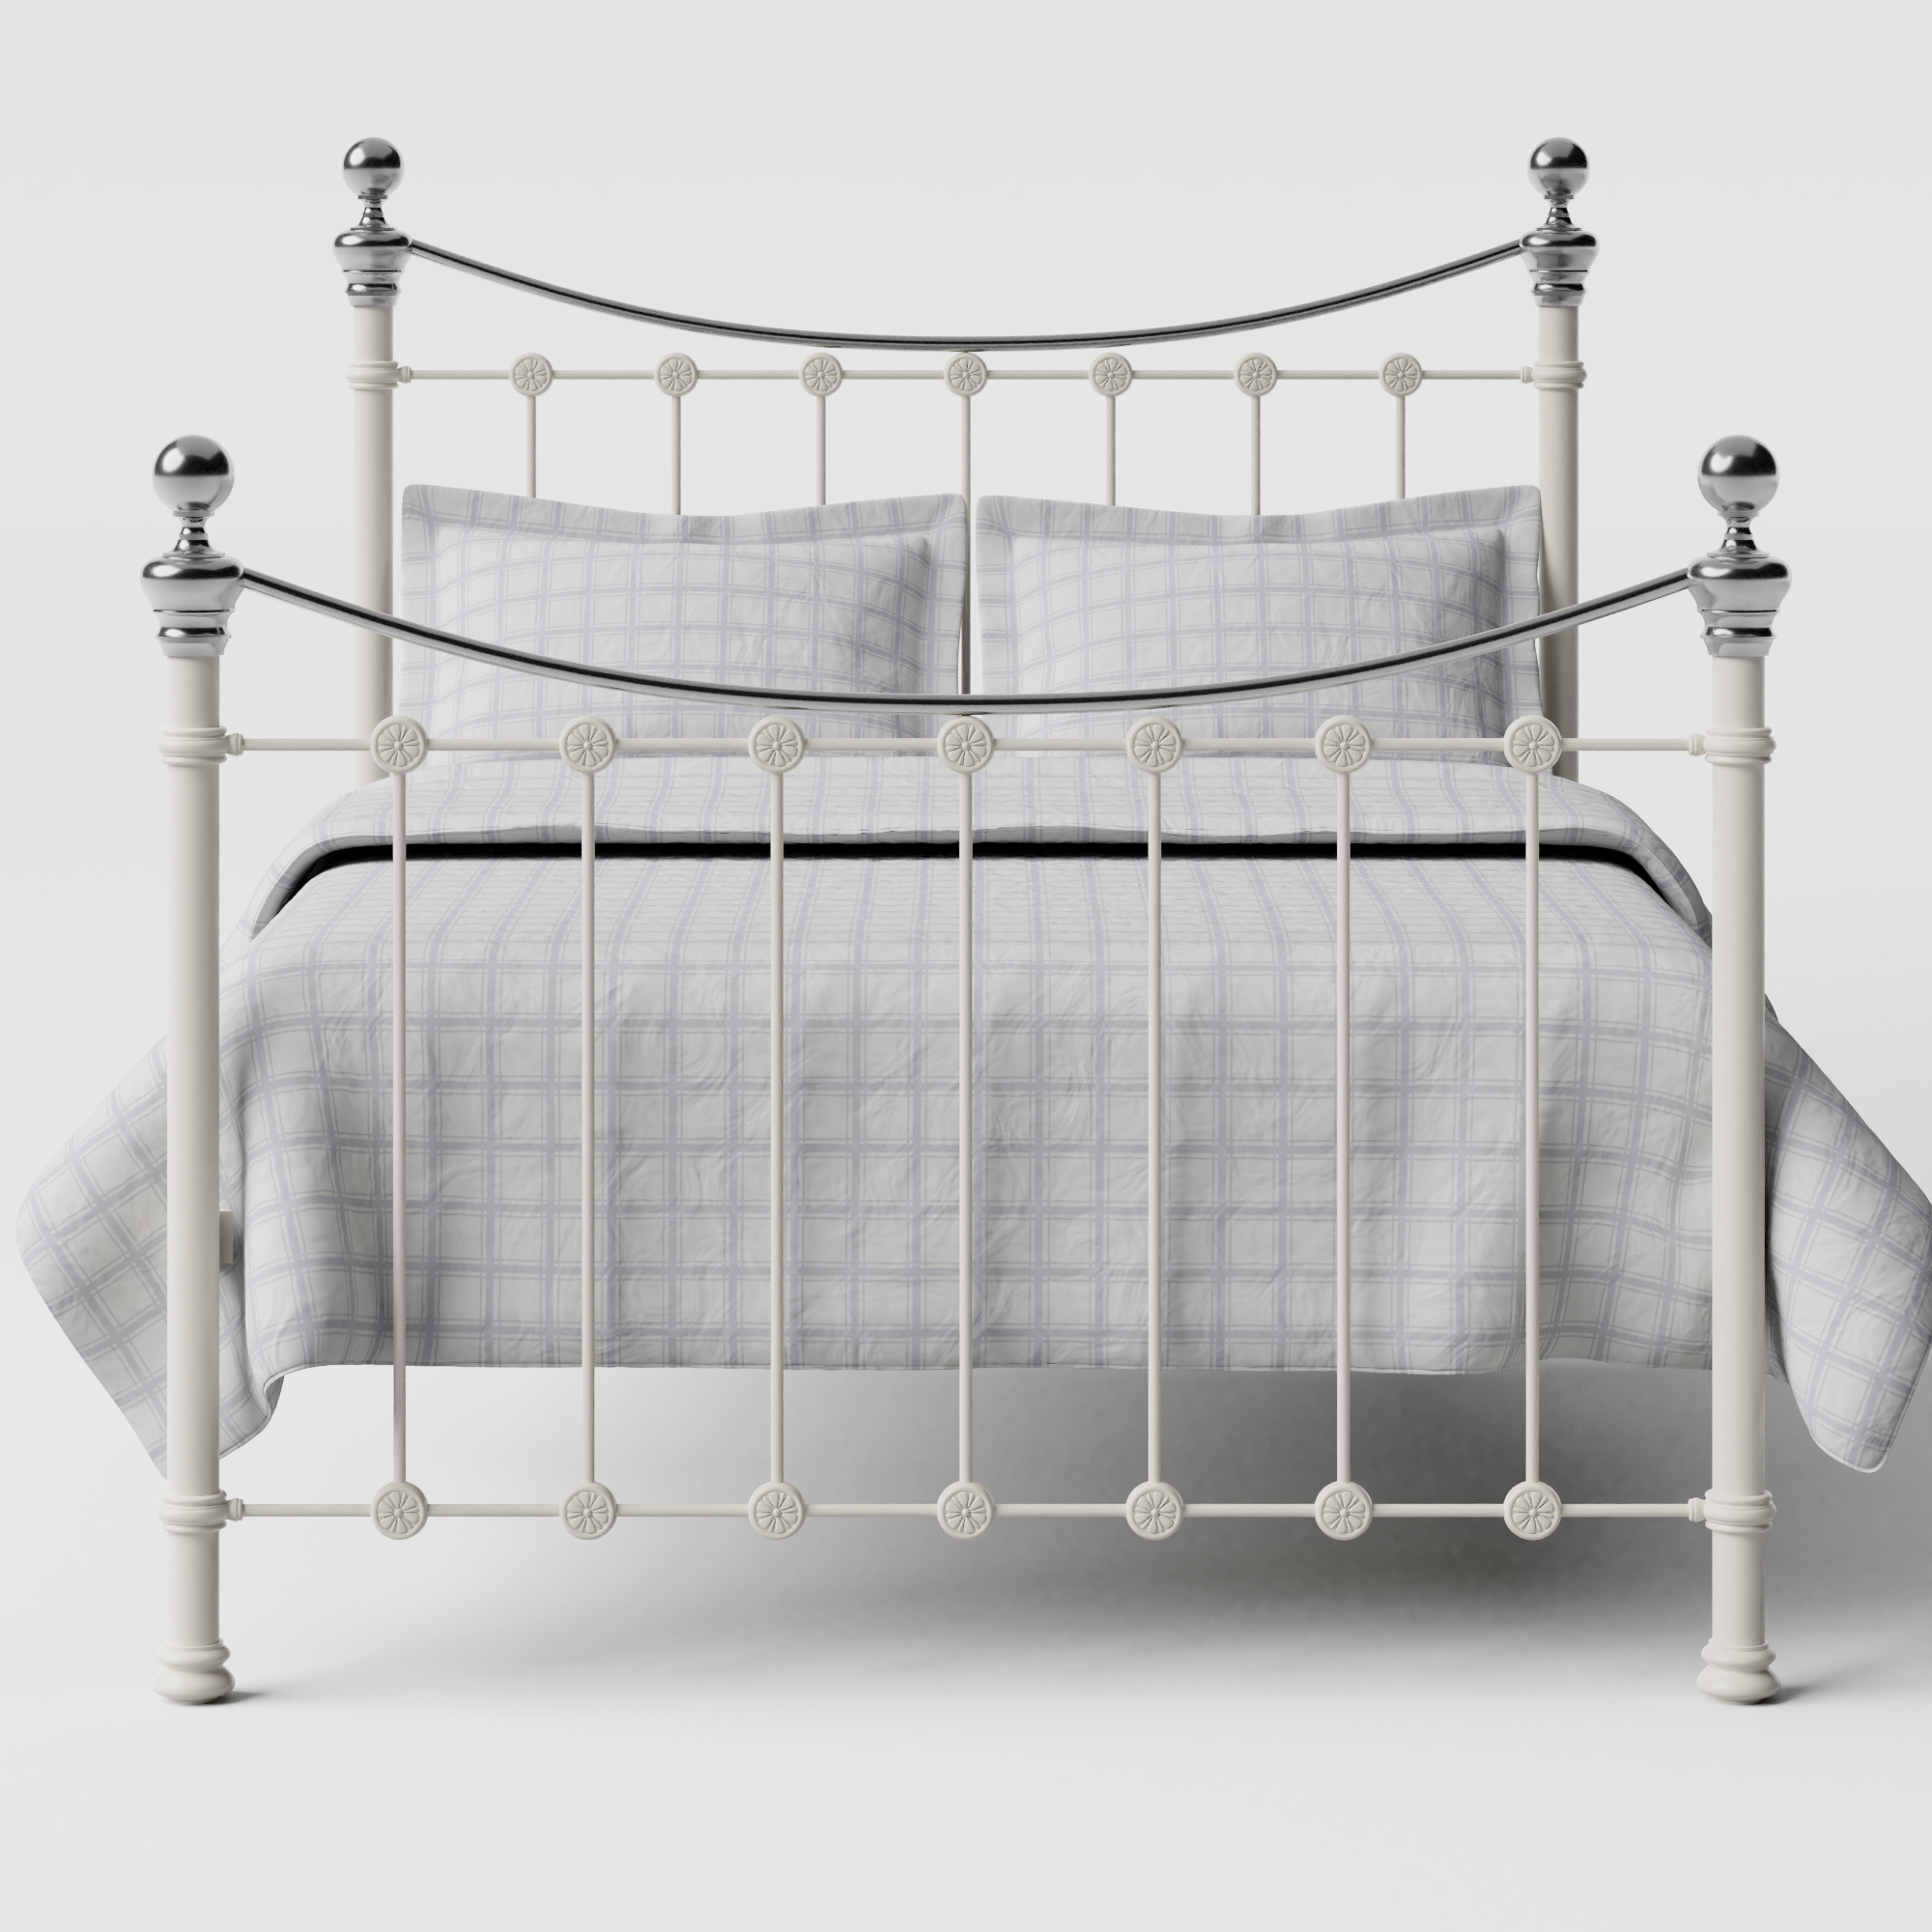 Selkirk Chromo iron/metal bed in ivory